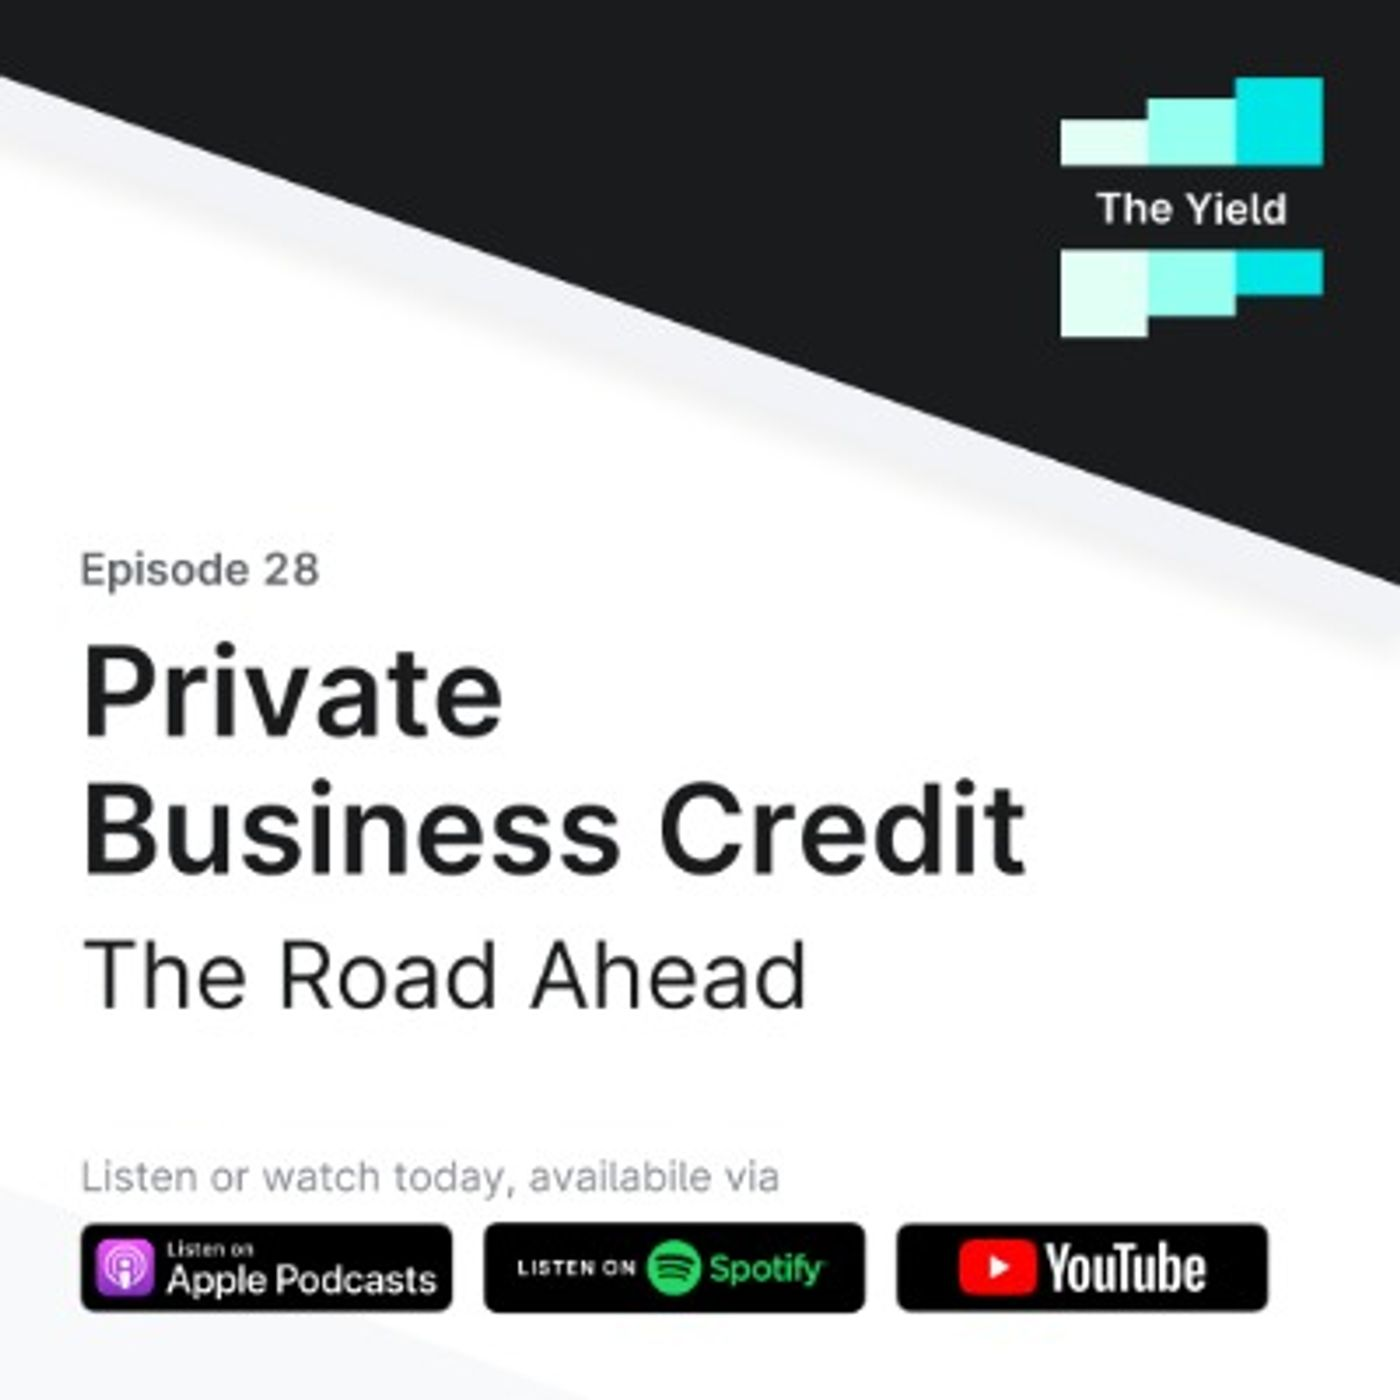 Private Business Credit: The Road Ahead